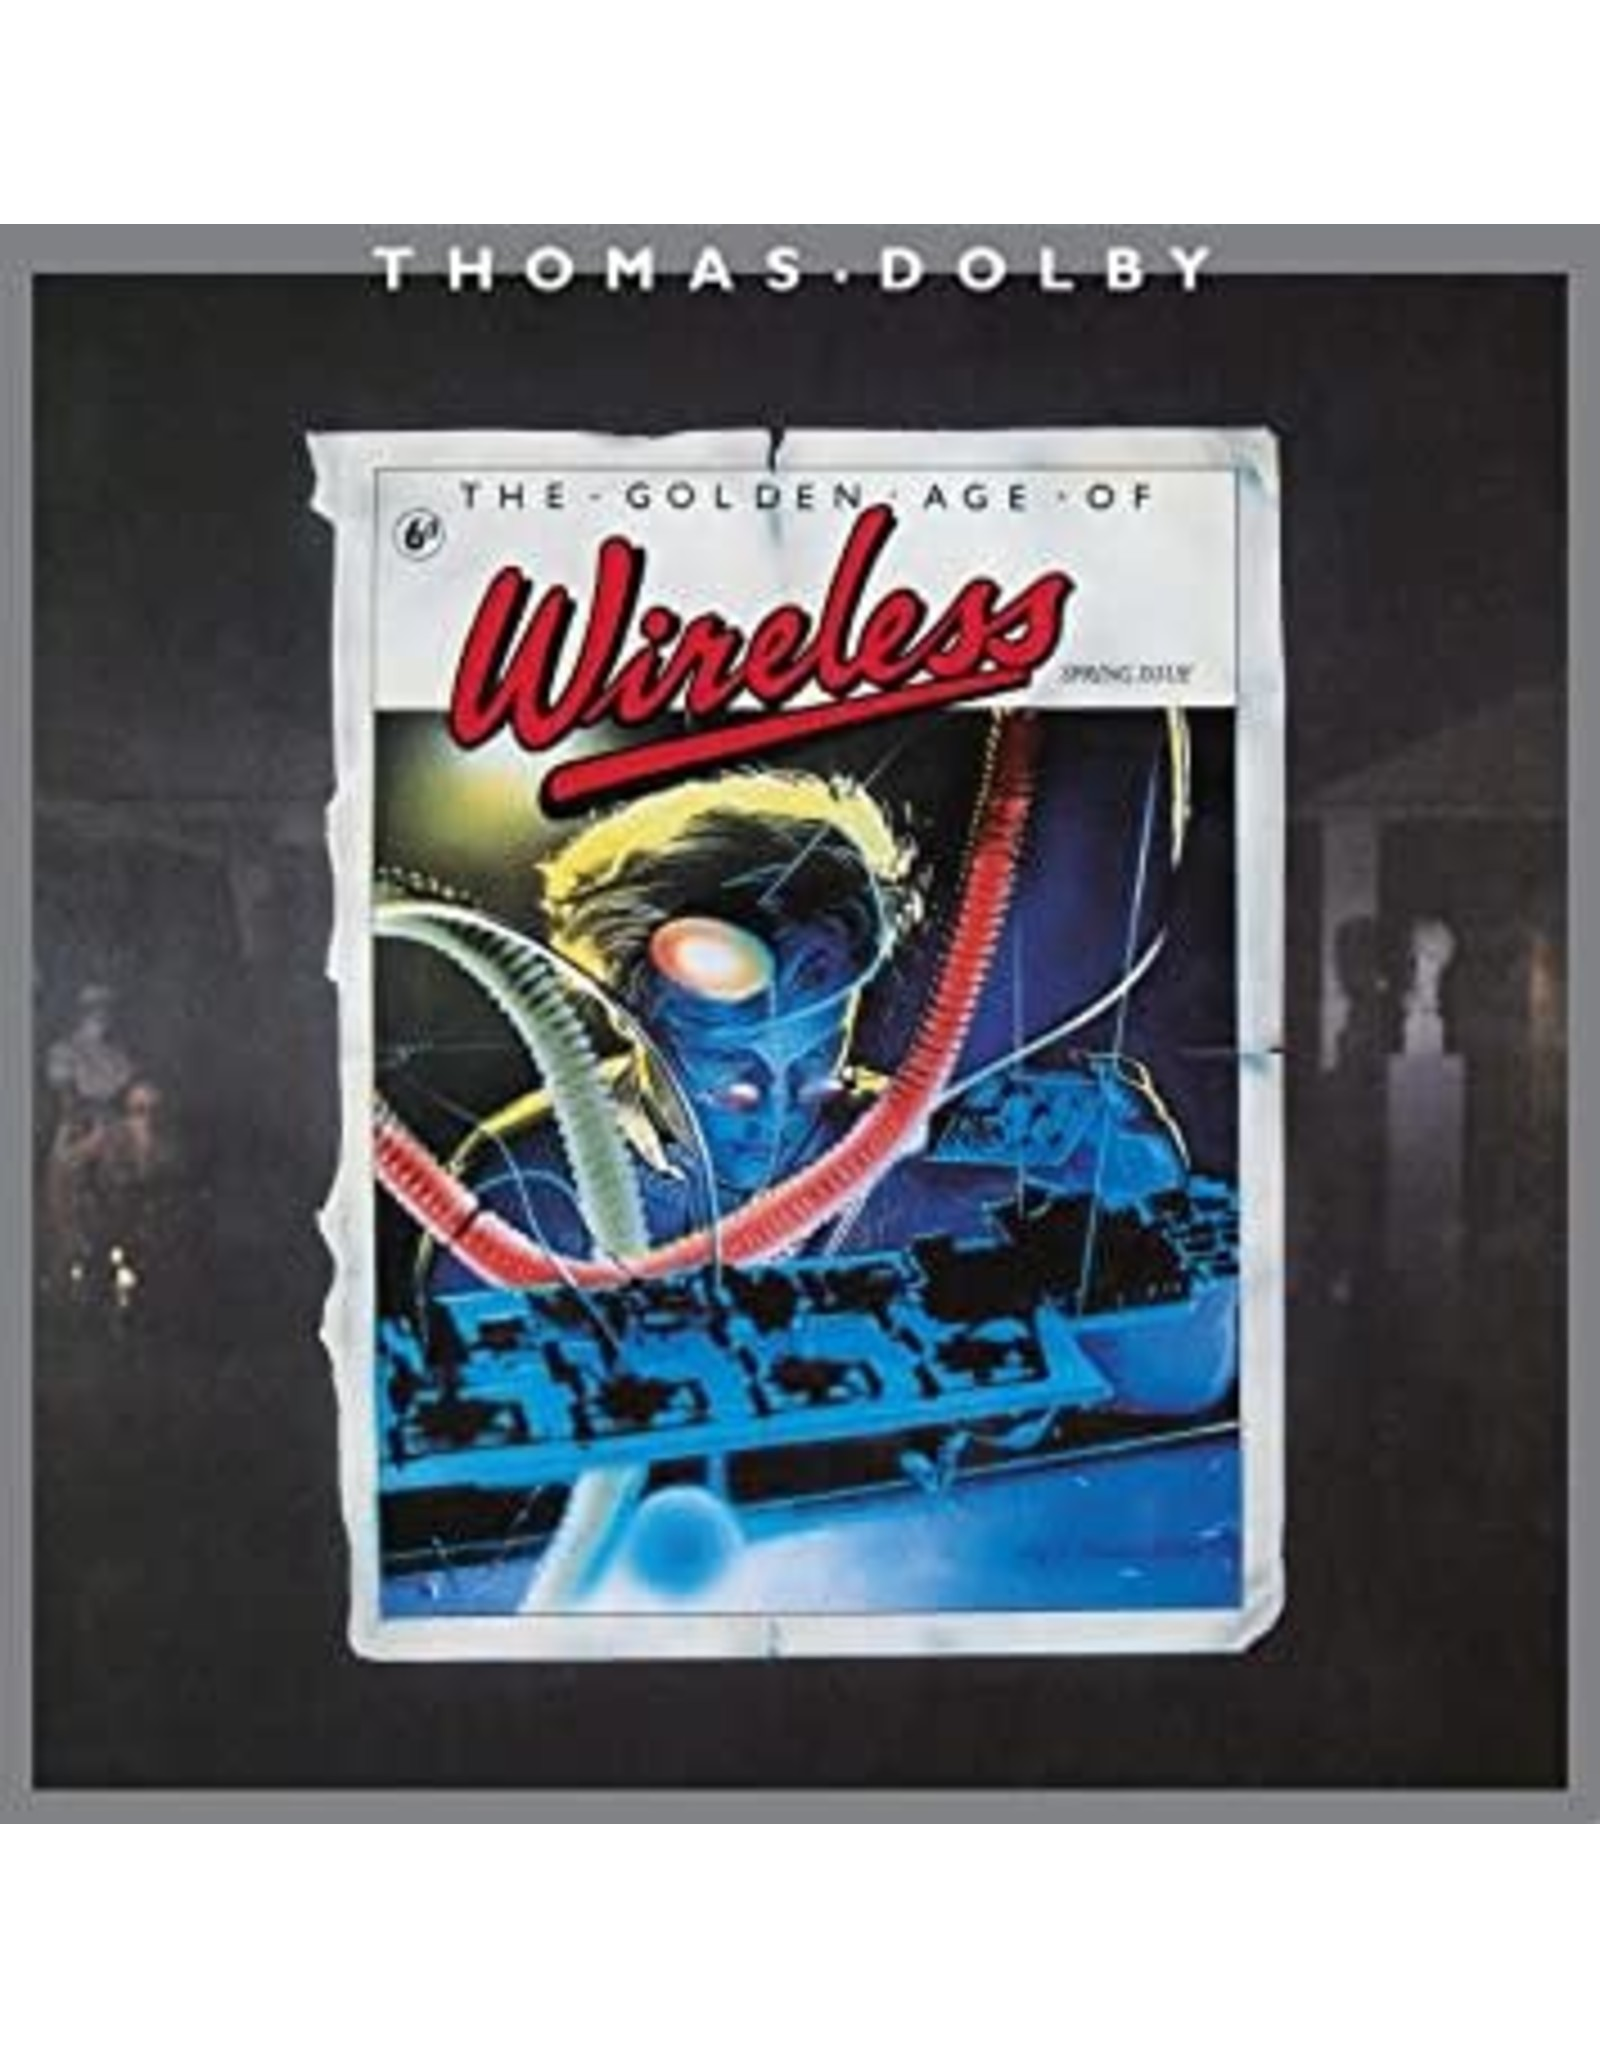 New Vinyl Thomas Dolby - The Golden Age Of Wireless (Colored) LP